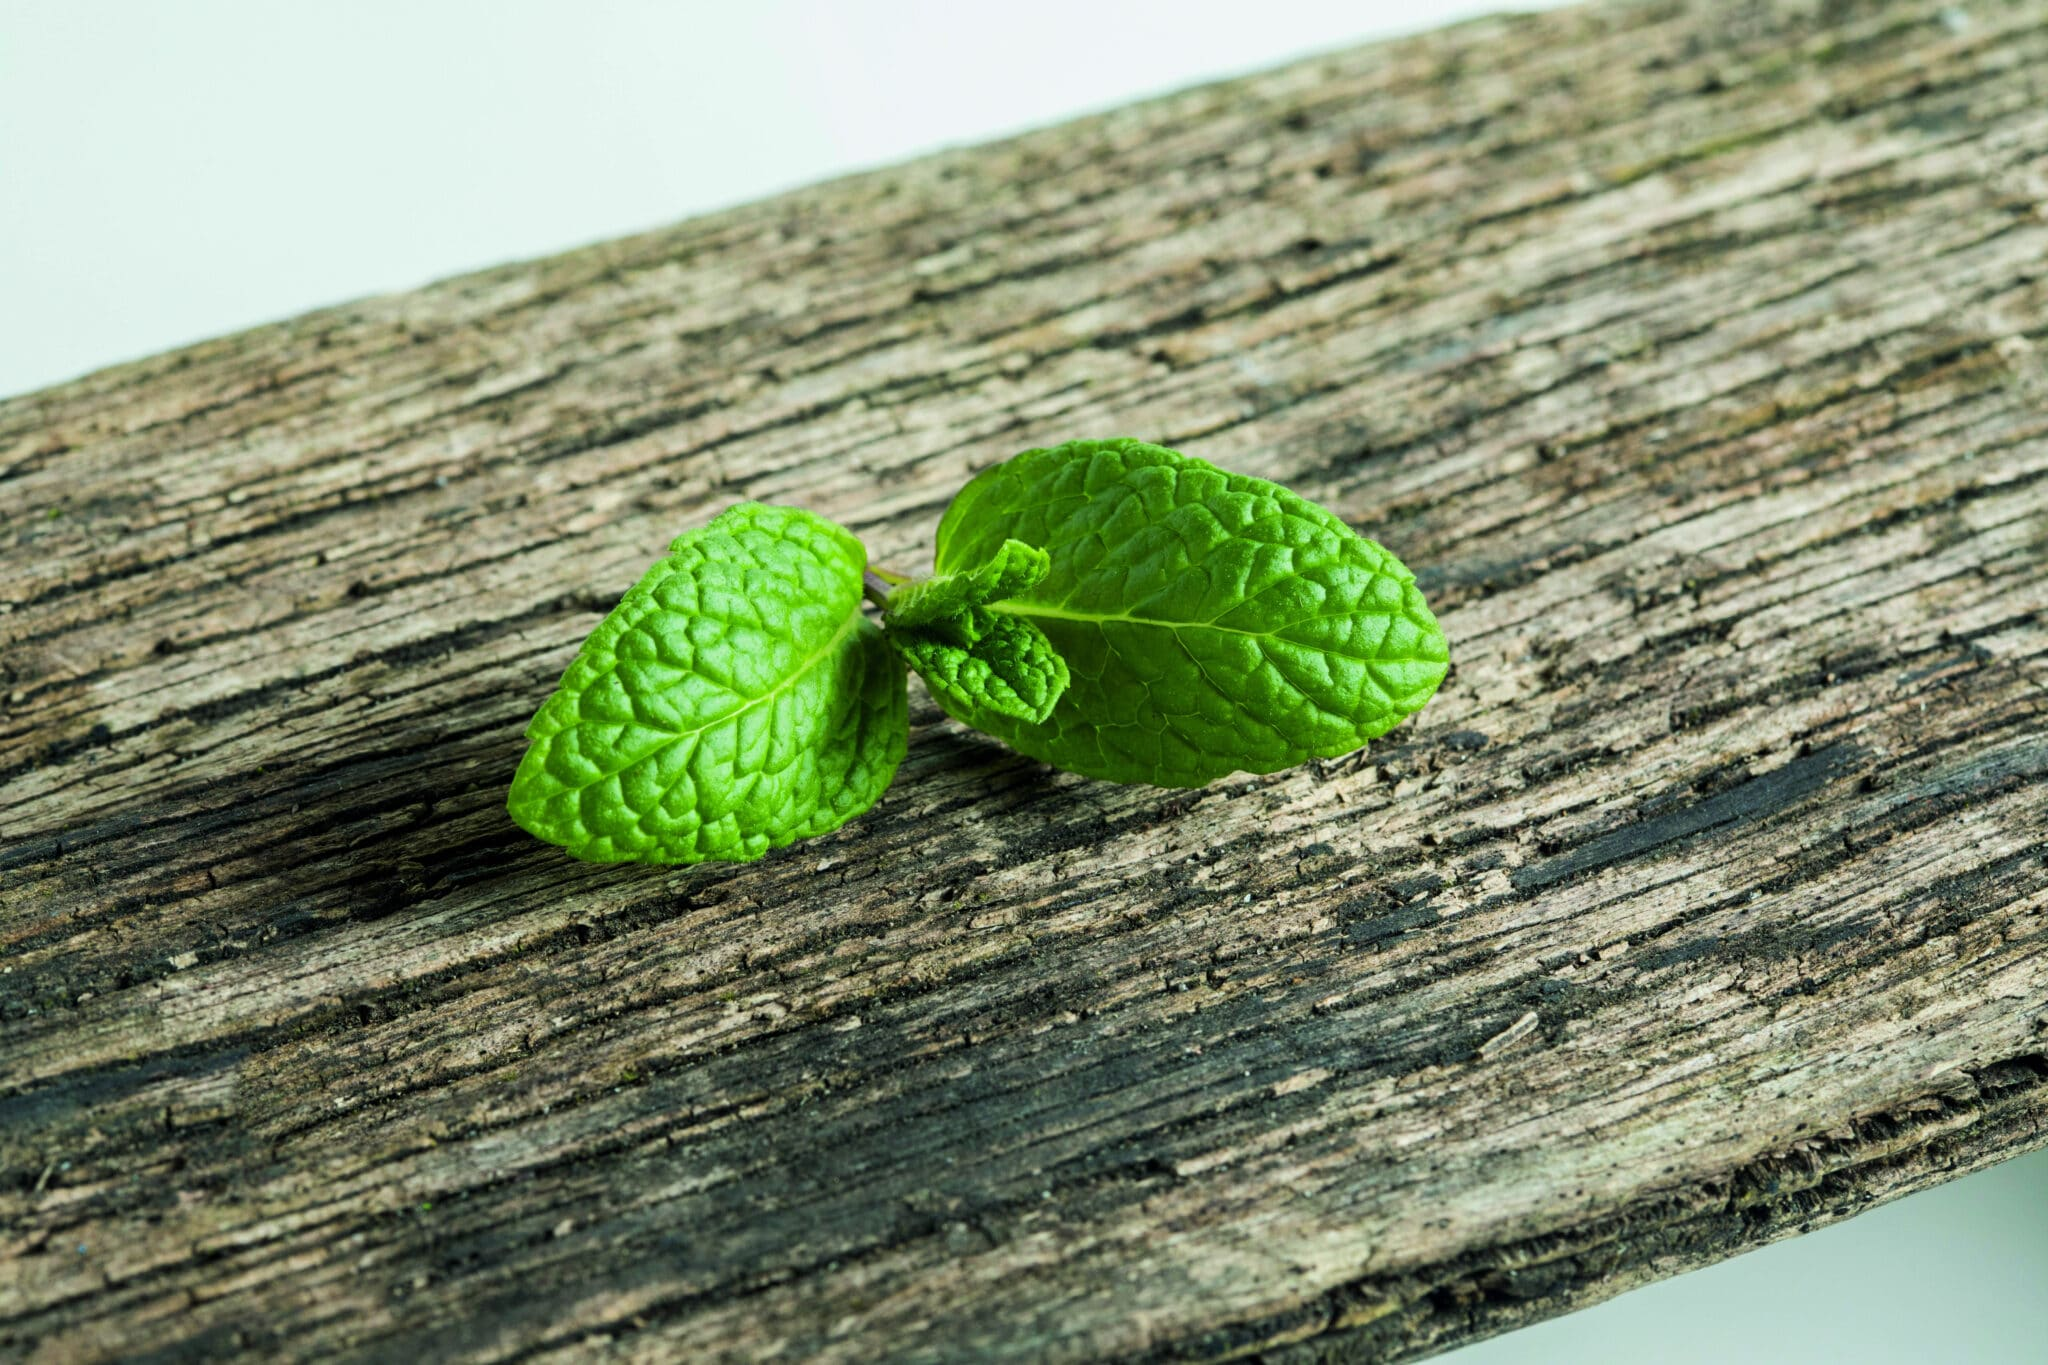 A closeup of peppermint sprig on a wooden table, showing a detailed view of these types of mint.